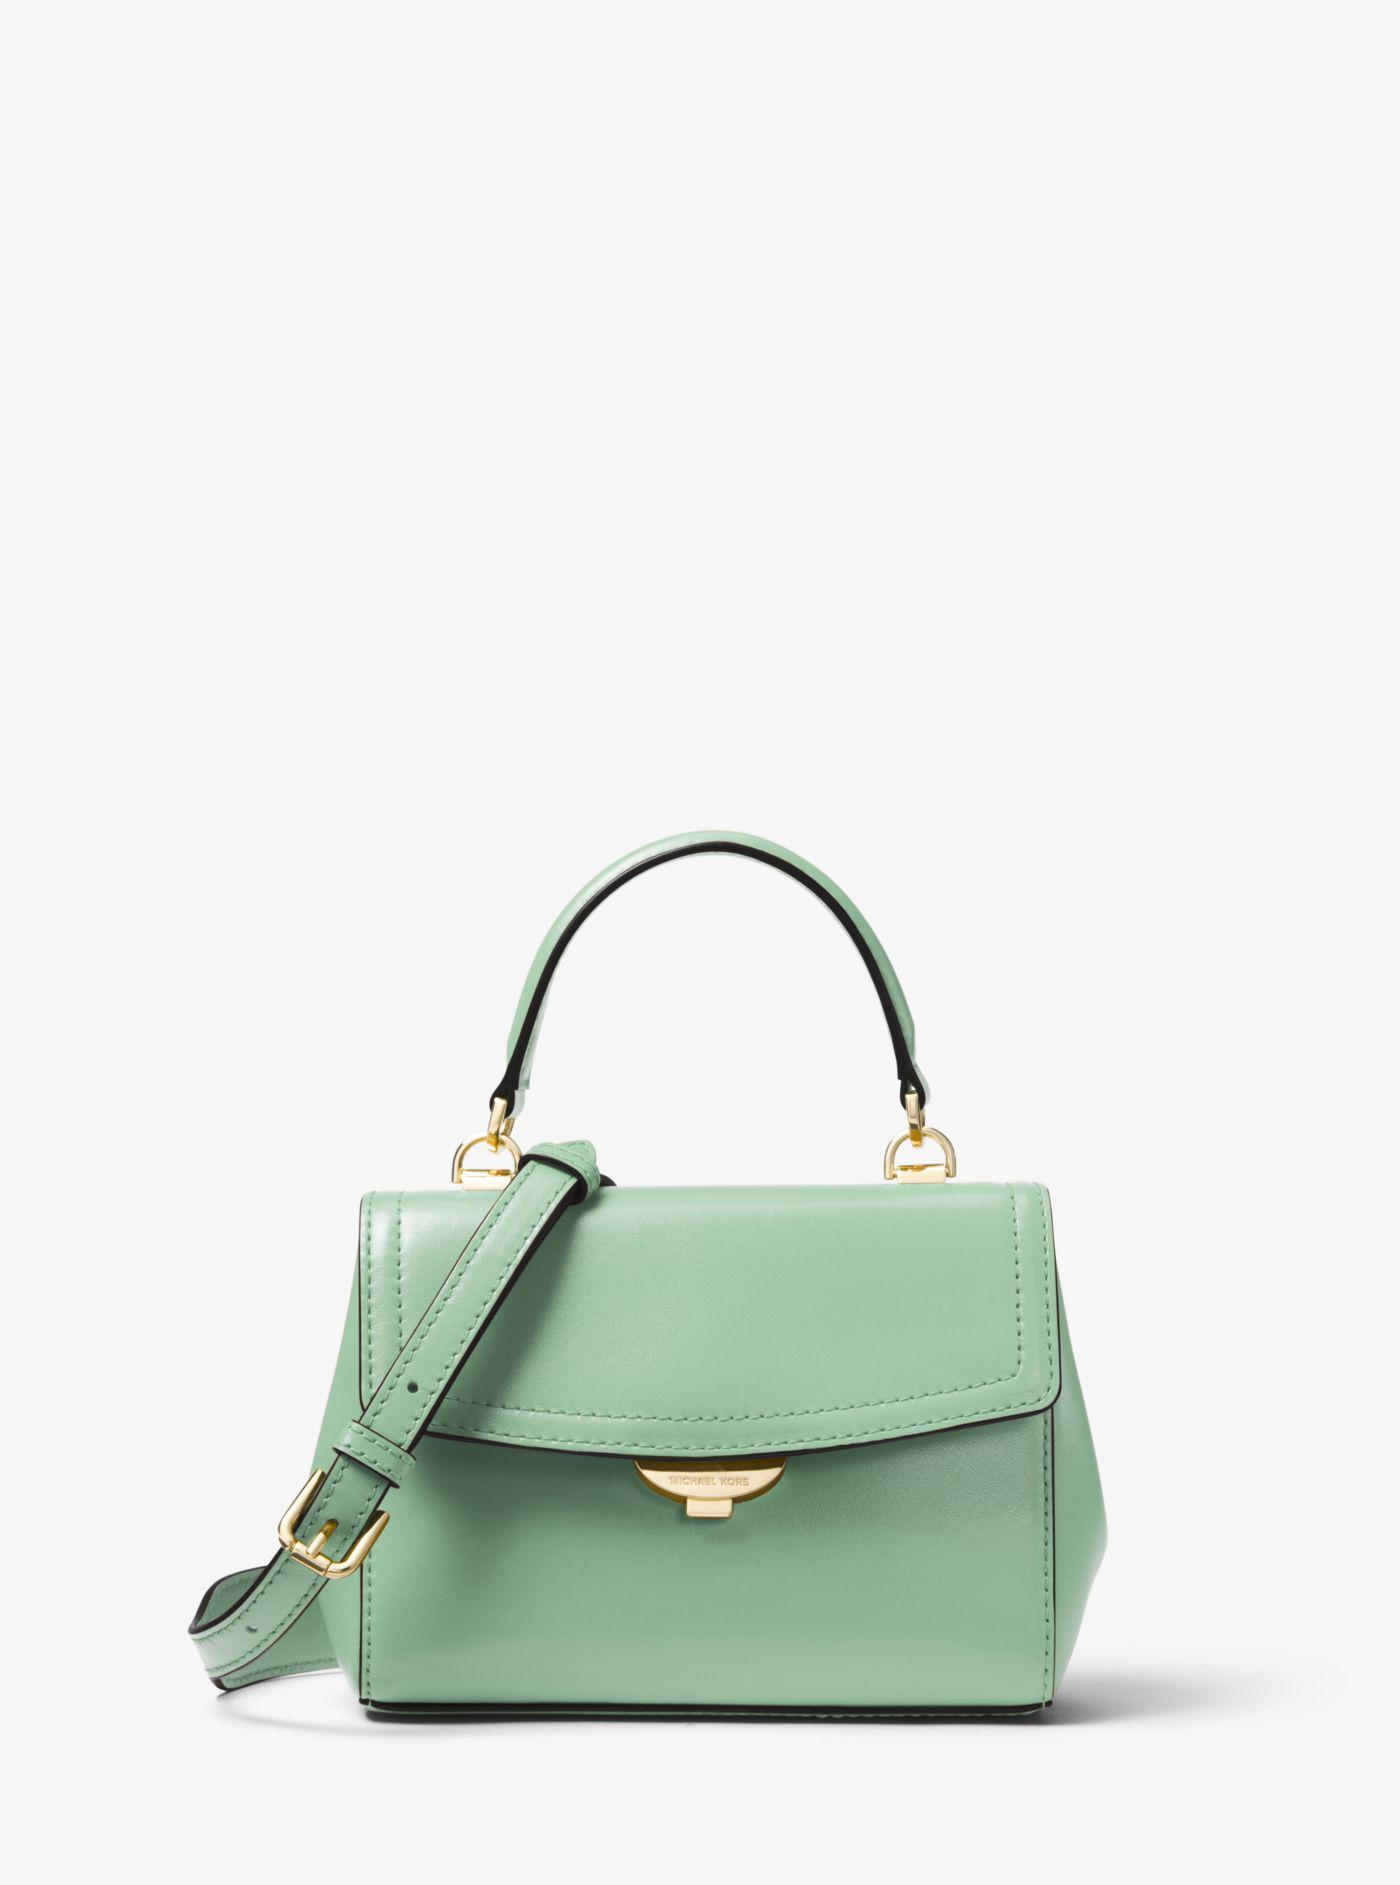 d8a0a0613f25 Lyst - Michael Kors Ava Extra-small Leather Crossbody in Green